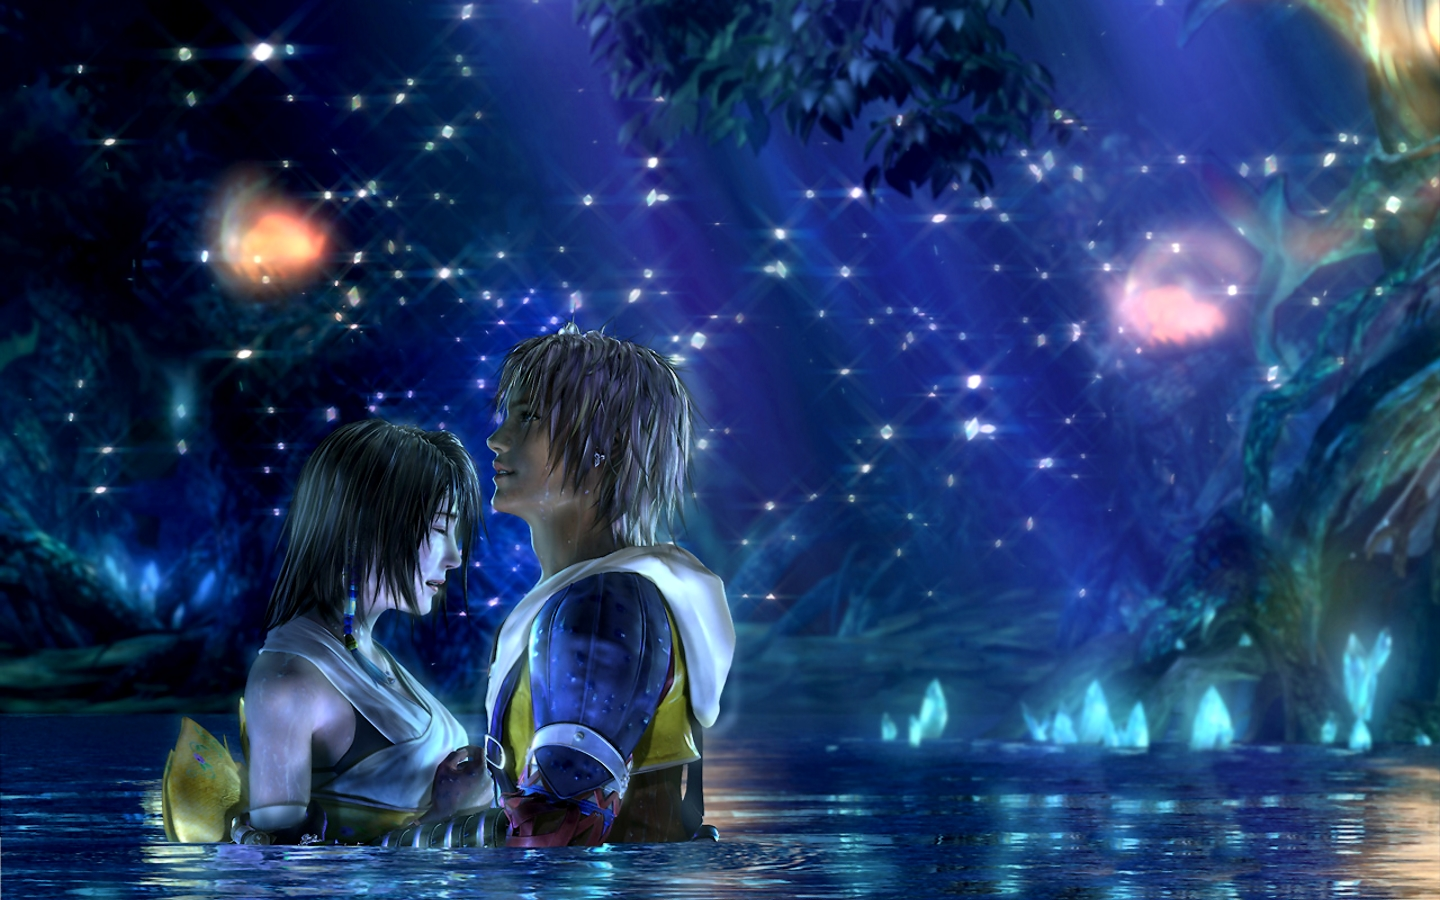 trololo blogg Final Fantasy X 2 Wallpaper Hd 1440x900